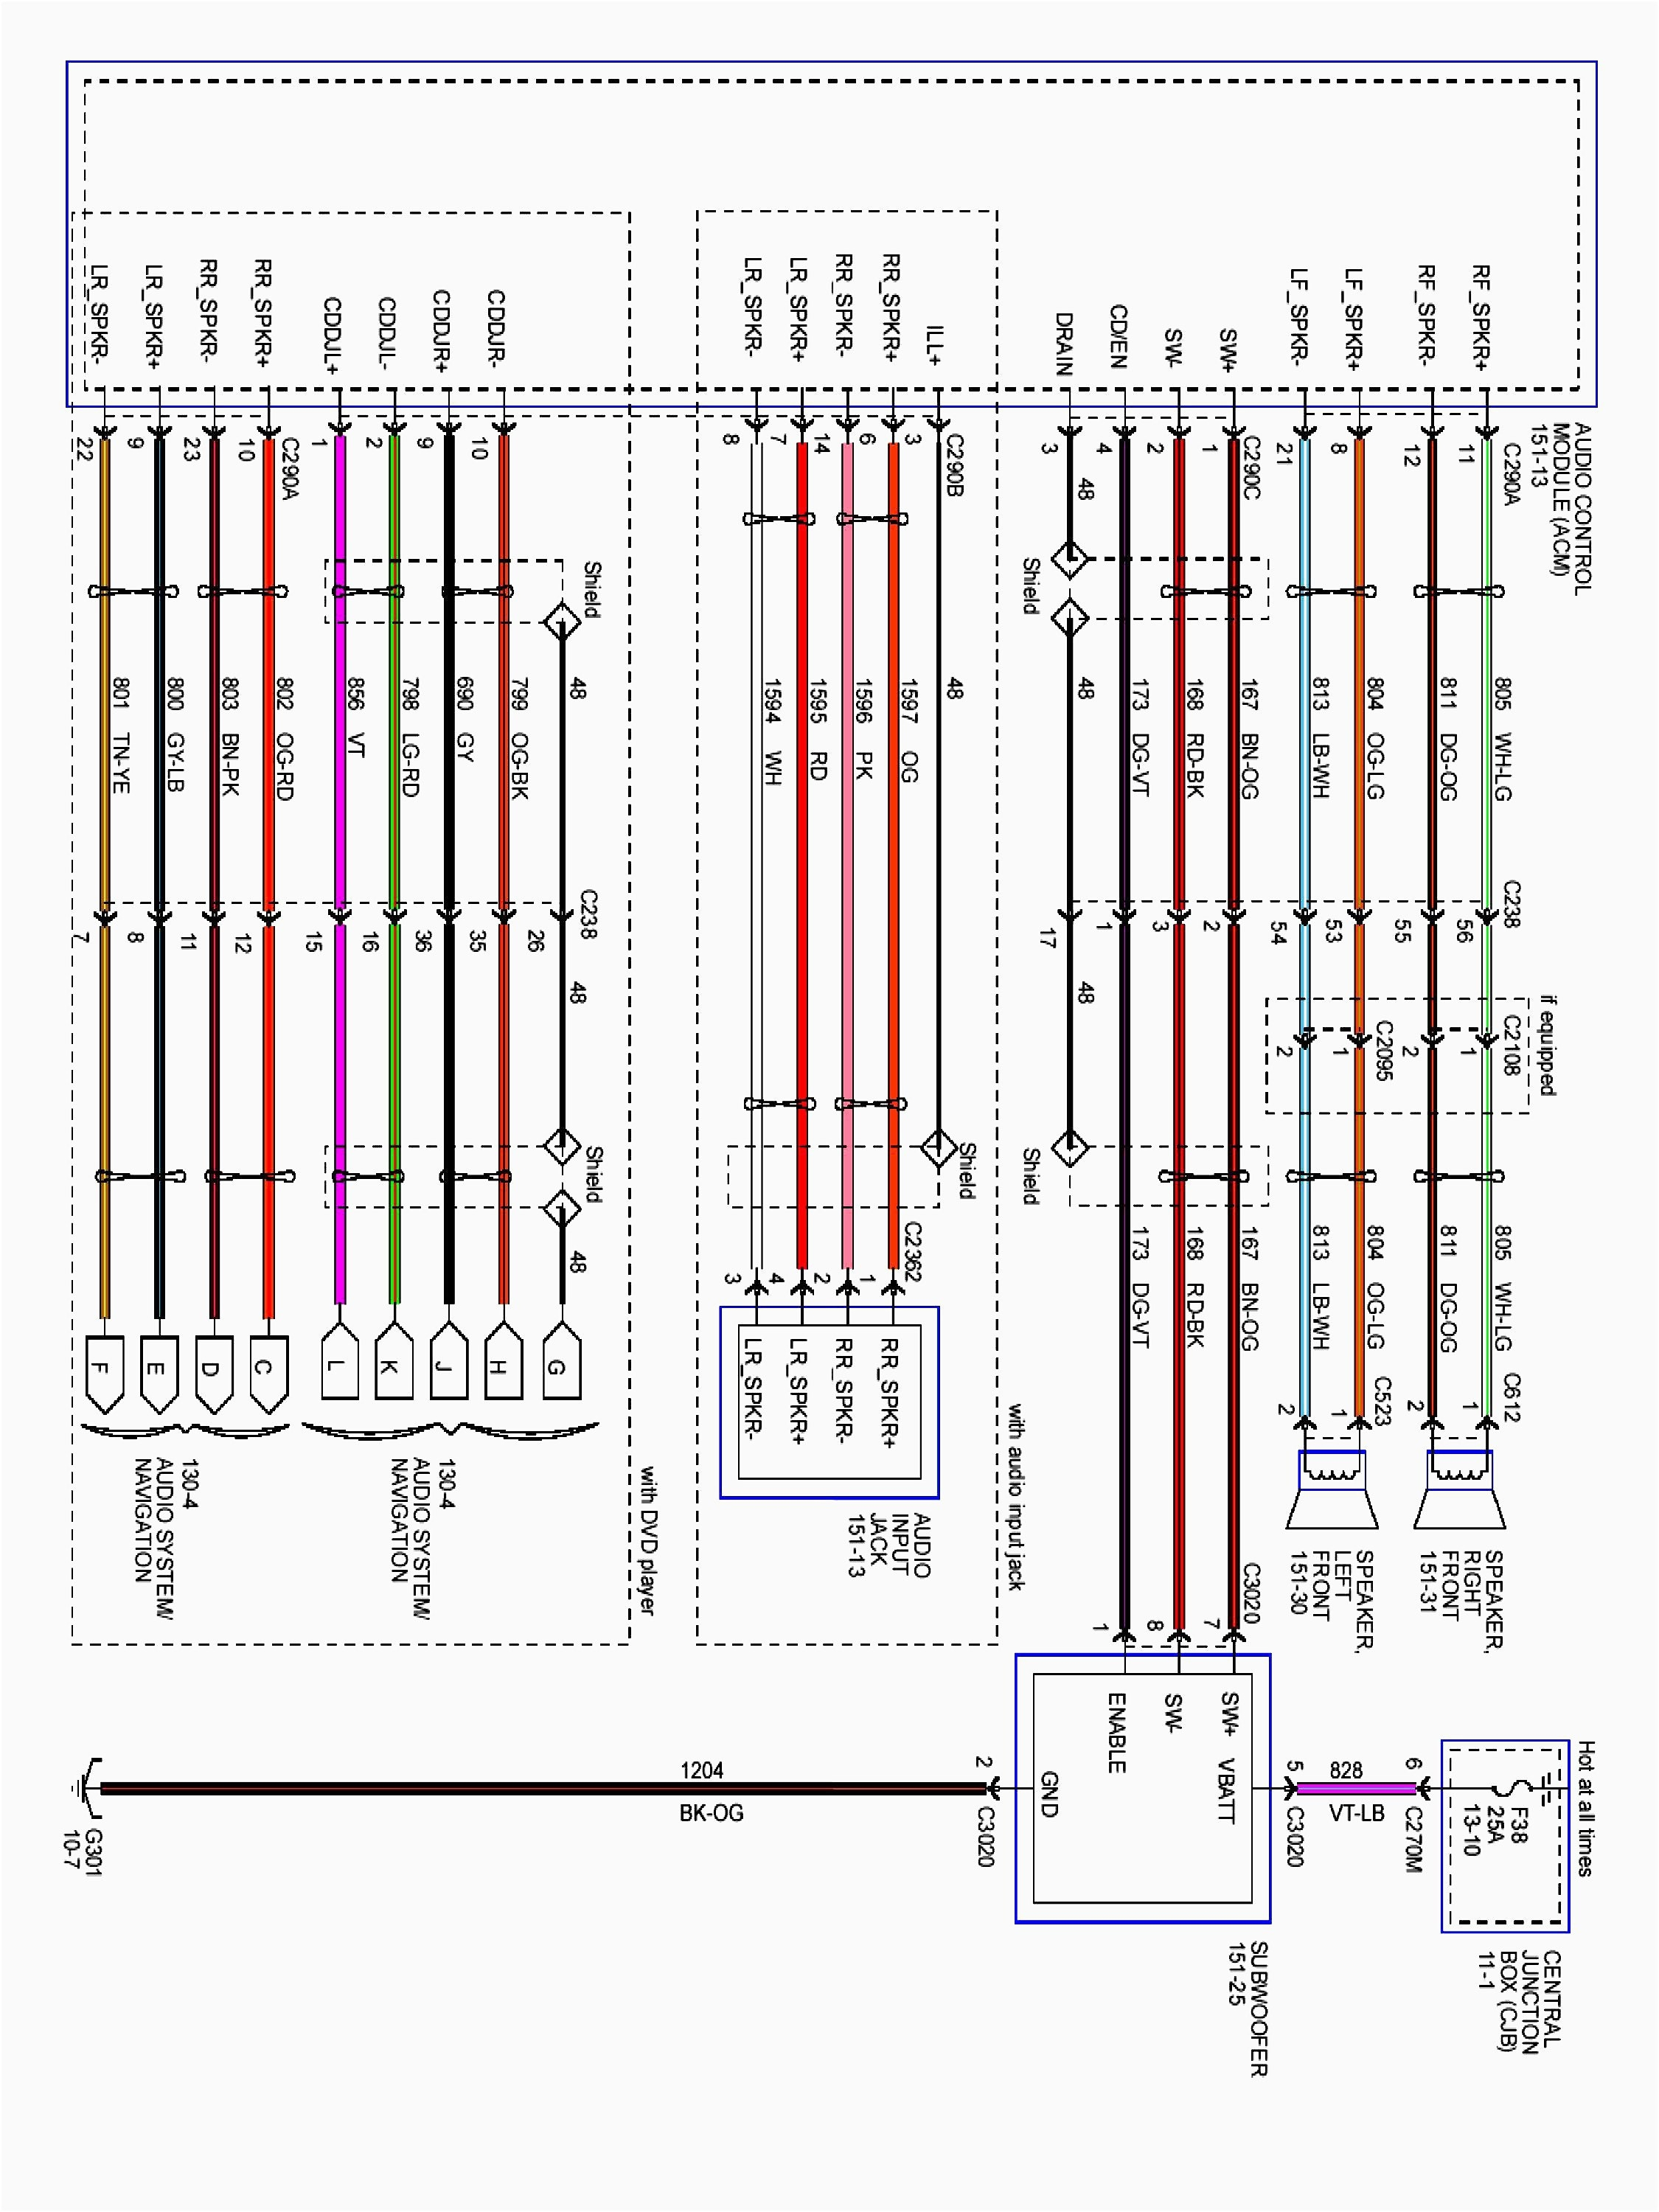 2003 f150 radio wiring diagram trusted wiring diagrams rh kroud co 97 f150 radio wiring harness 1997 f150 radio wiring diagram